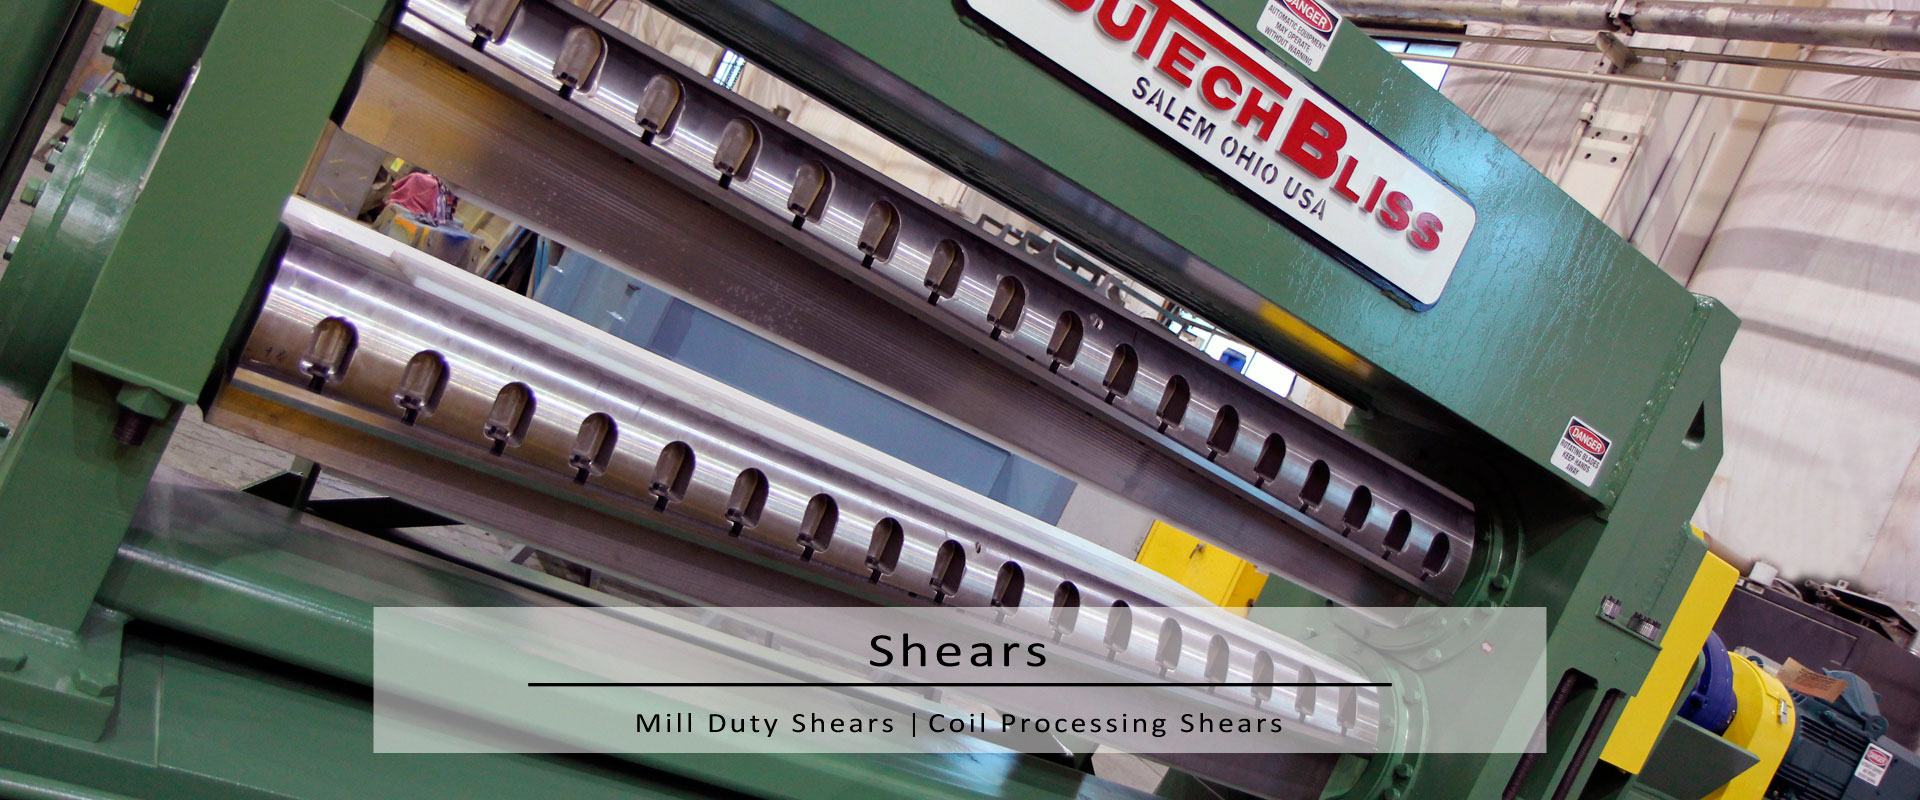 coil processing & mill shears